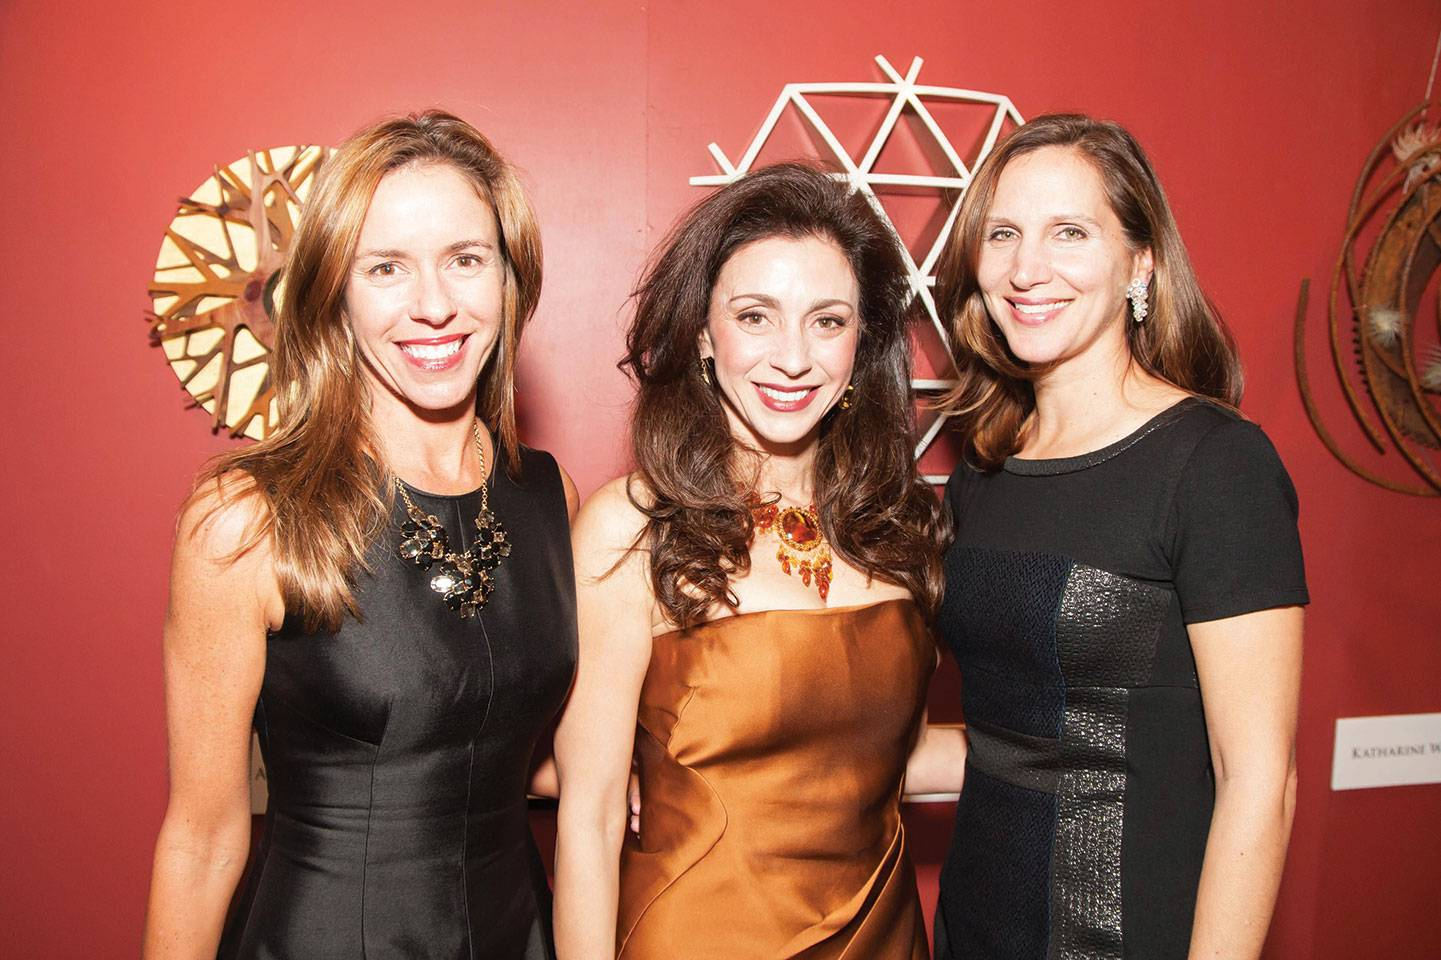 Stephanie Plexico, Maryam Muduroglu and Jessica Kaludis